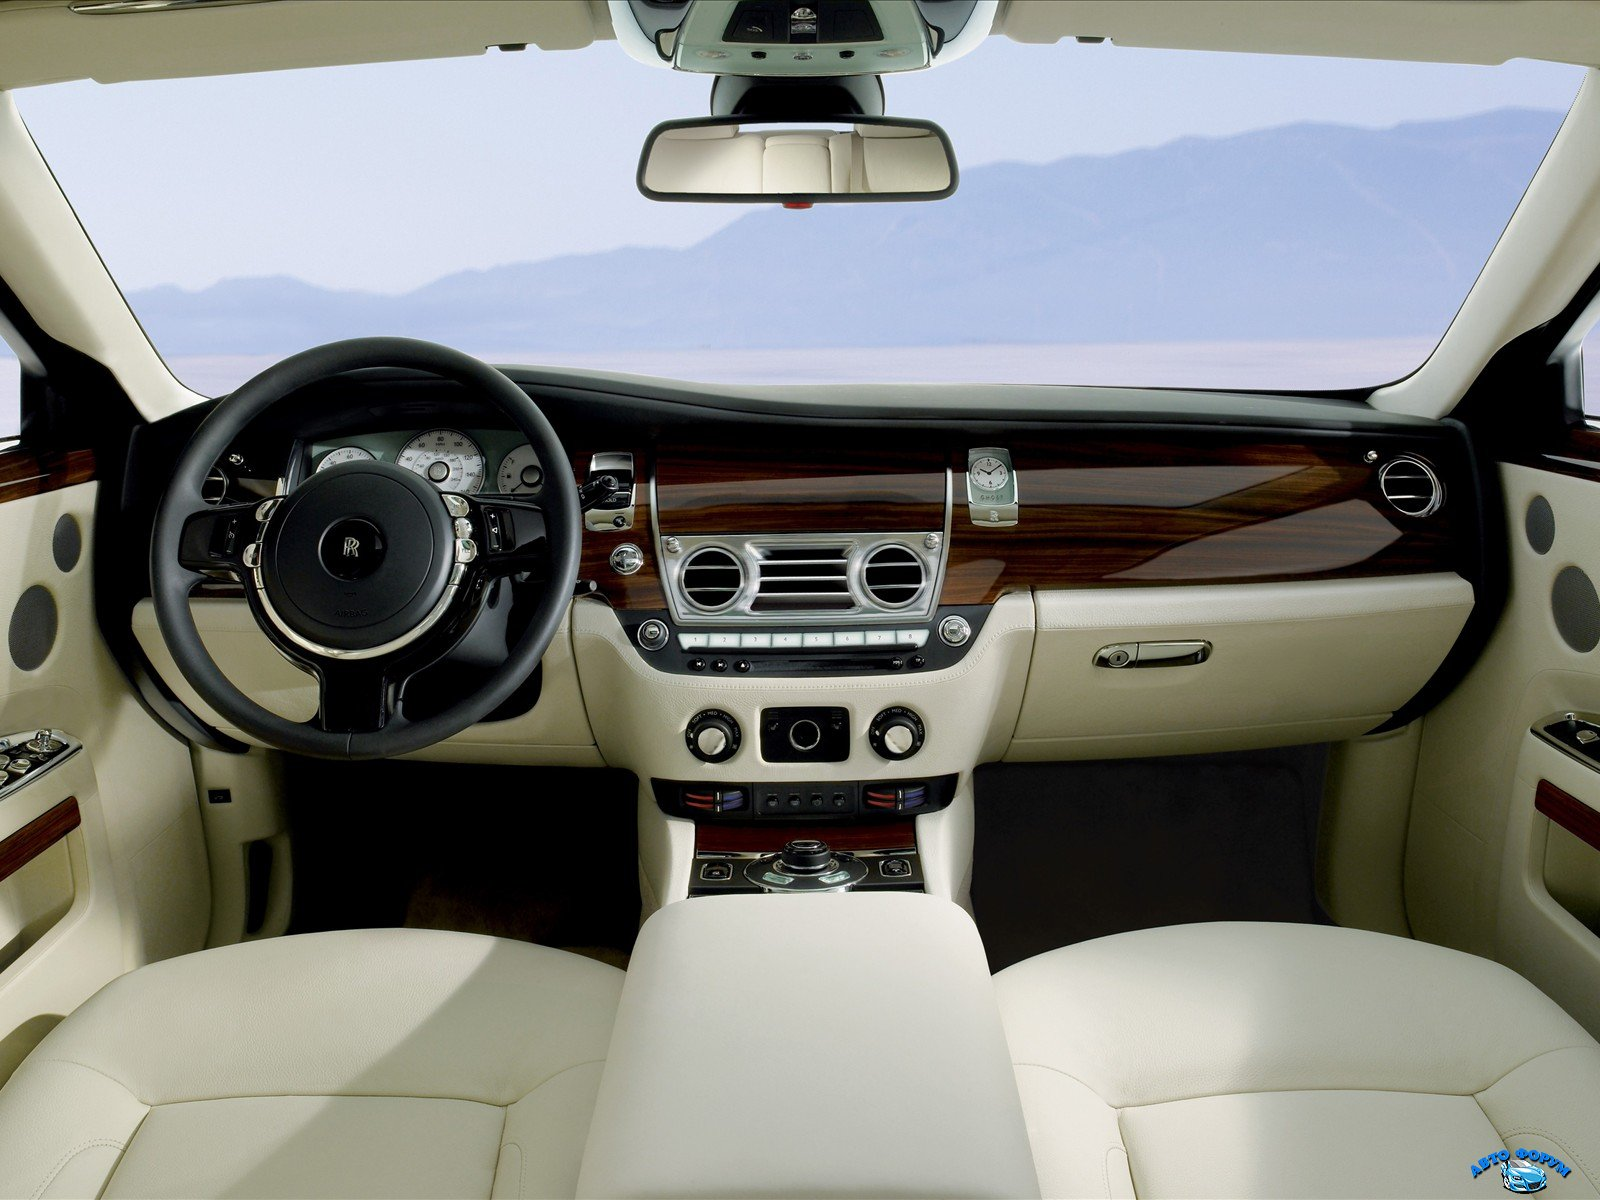 rolls-royce_ghost_interior_36.jpg